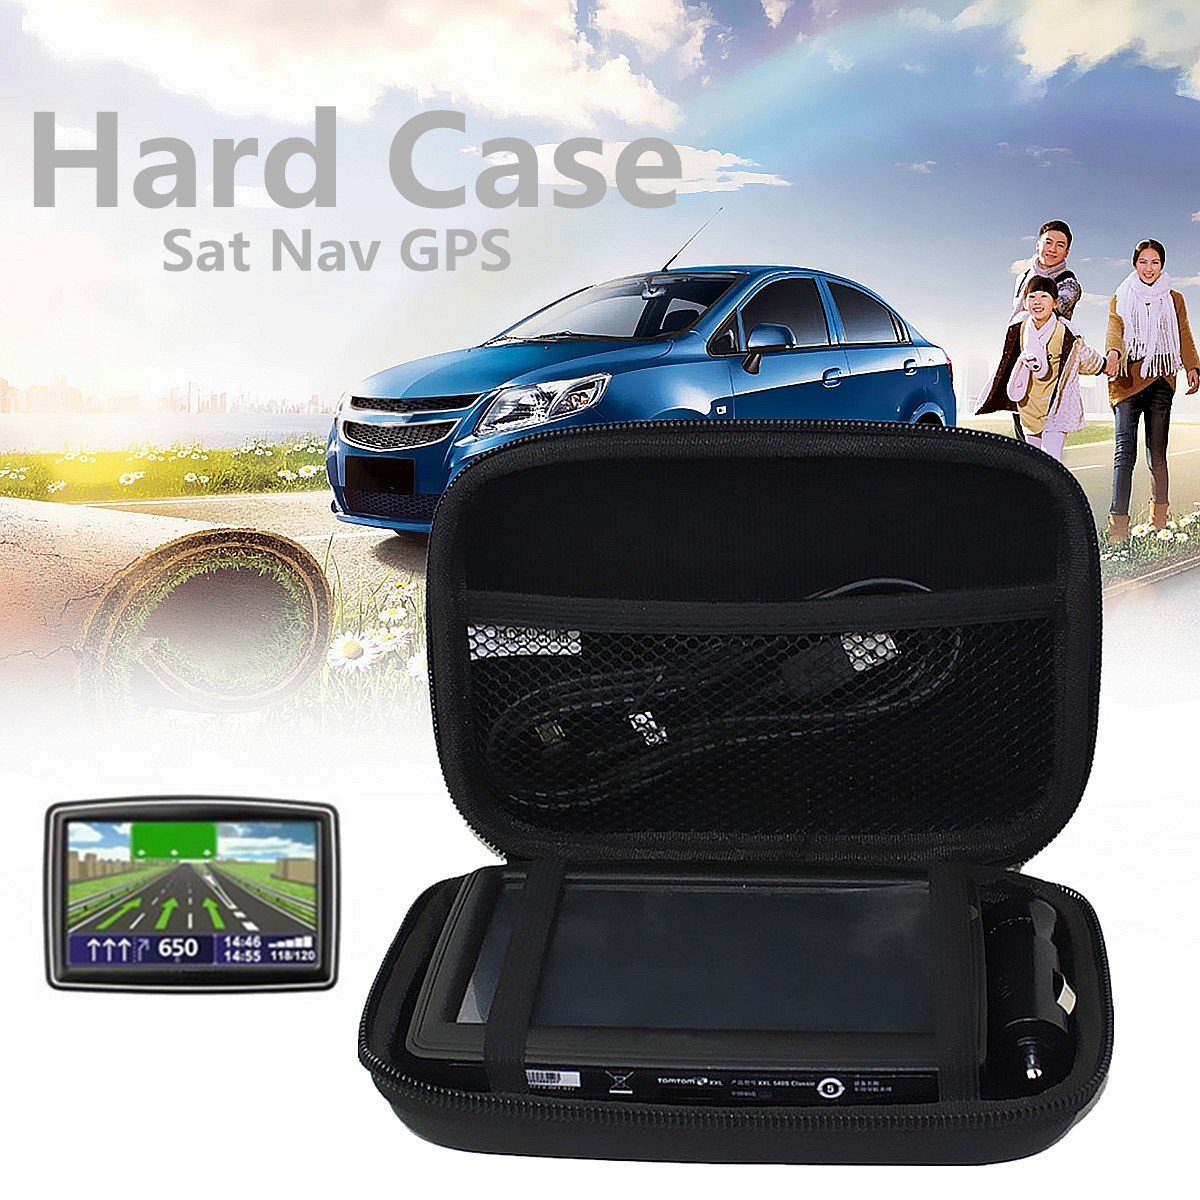 5 Inch Hard Shell Storage Carrying Case Cover Car GPS Navigation Protective Bag Pouch For TomTom/Sat/Nav/GO 5100 5000 510 500 ep5 20pcs lot mini dv headphone sport camera bluetooth headset video recorder run ride video camera listen to music